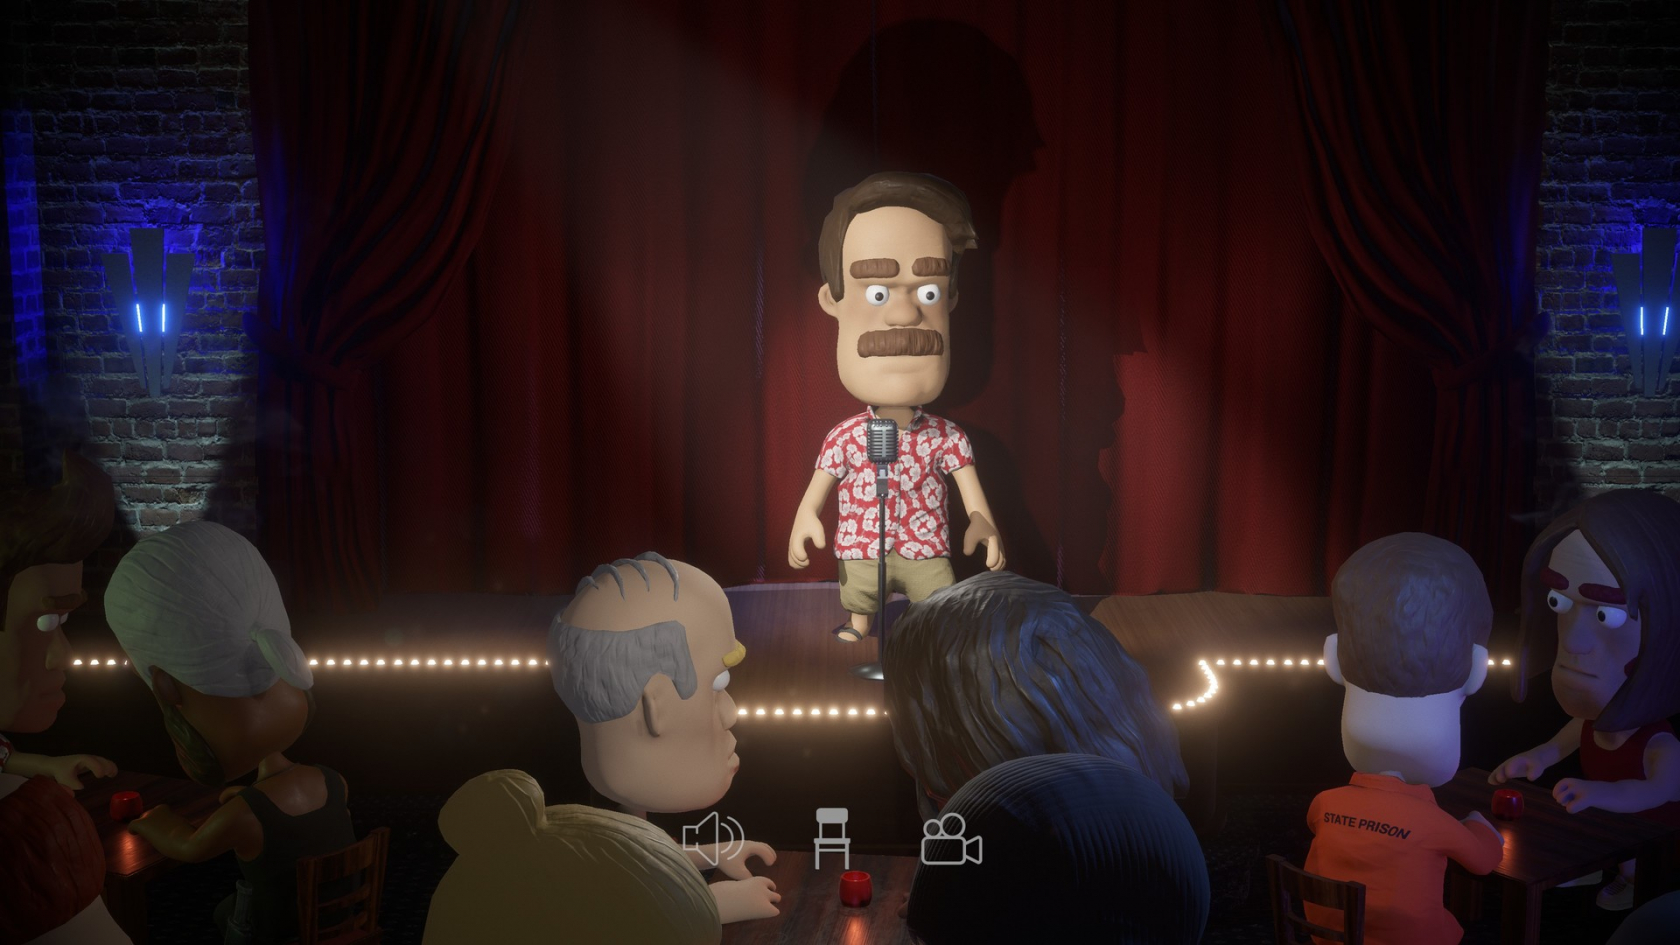 Comedy Night puts you on a virtual stage to try out jokes on real audiences